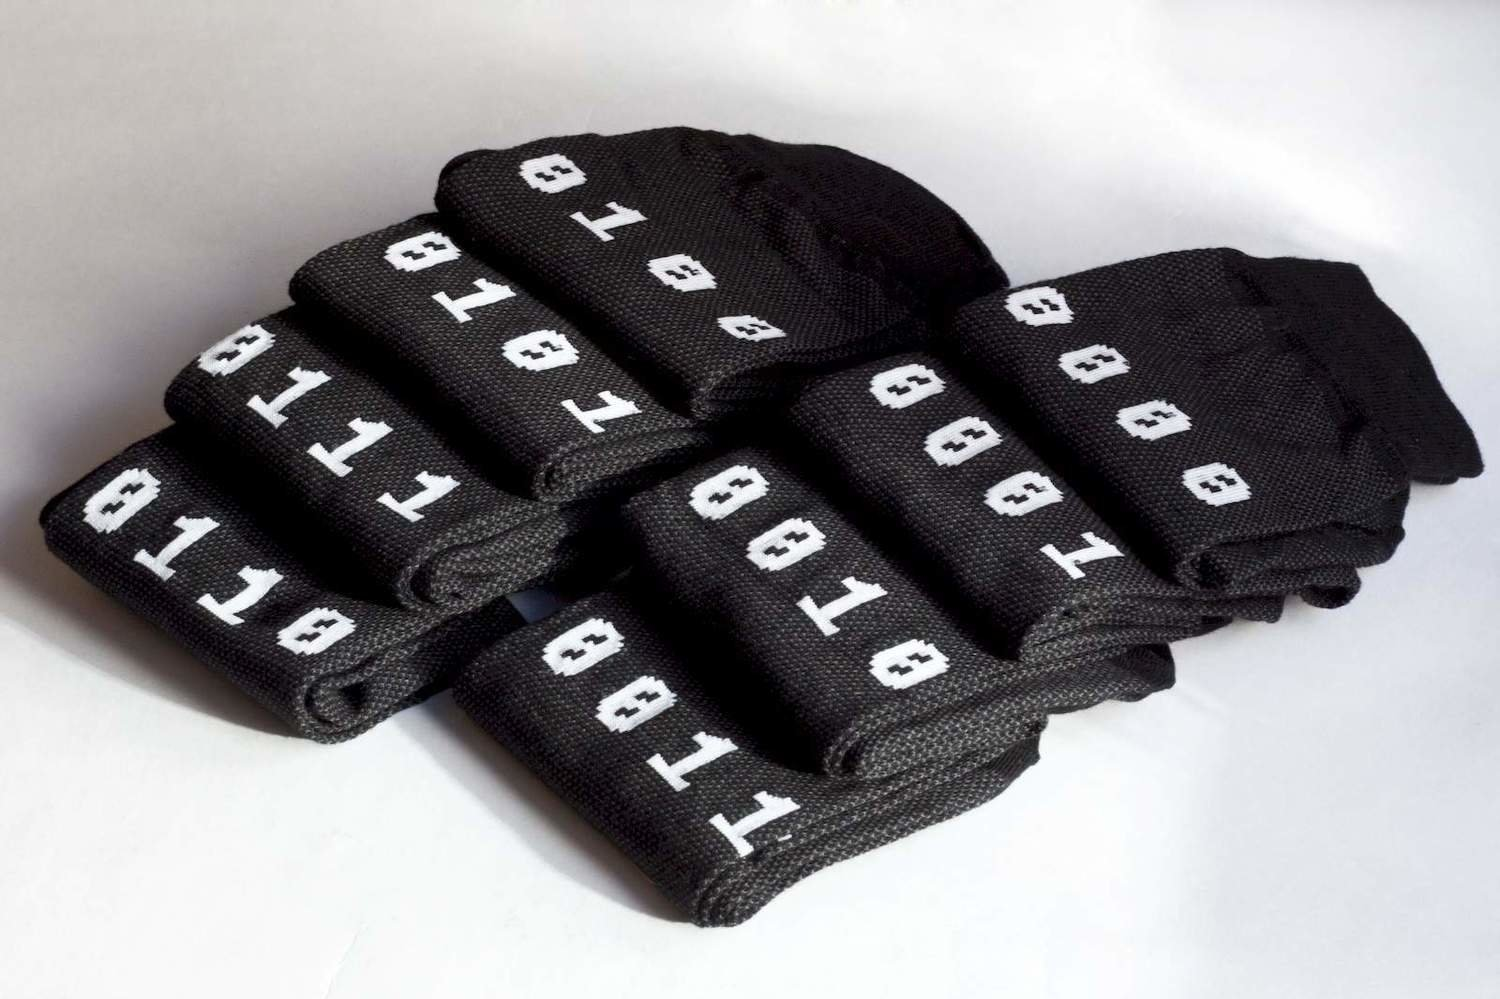 NumSocks IT Set (8 pairs in a pack)